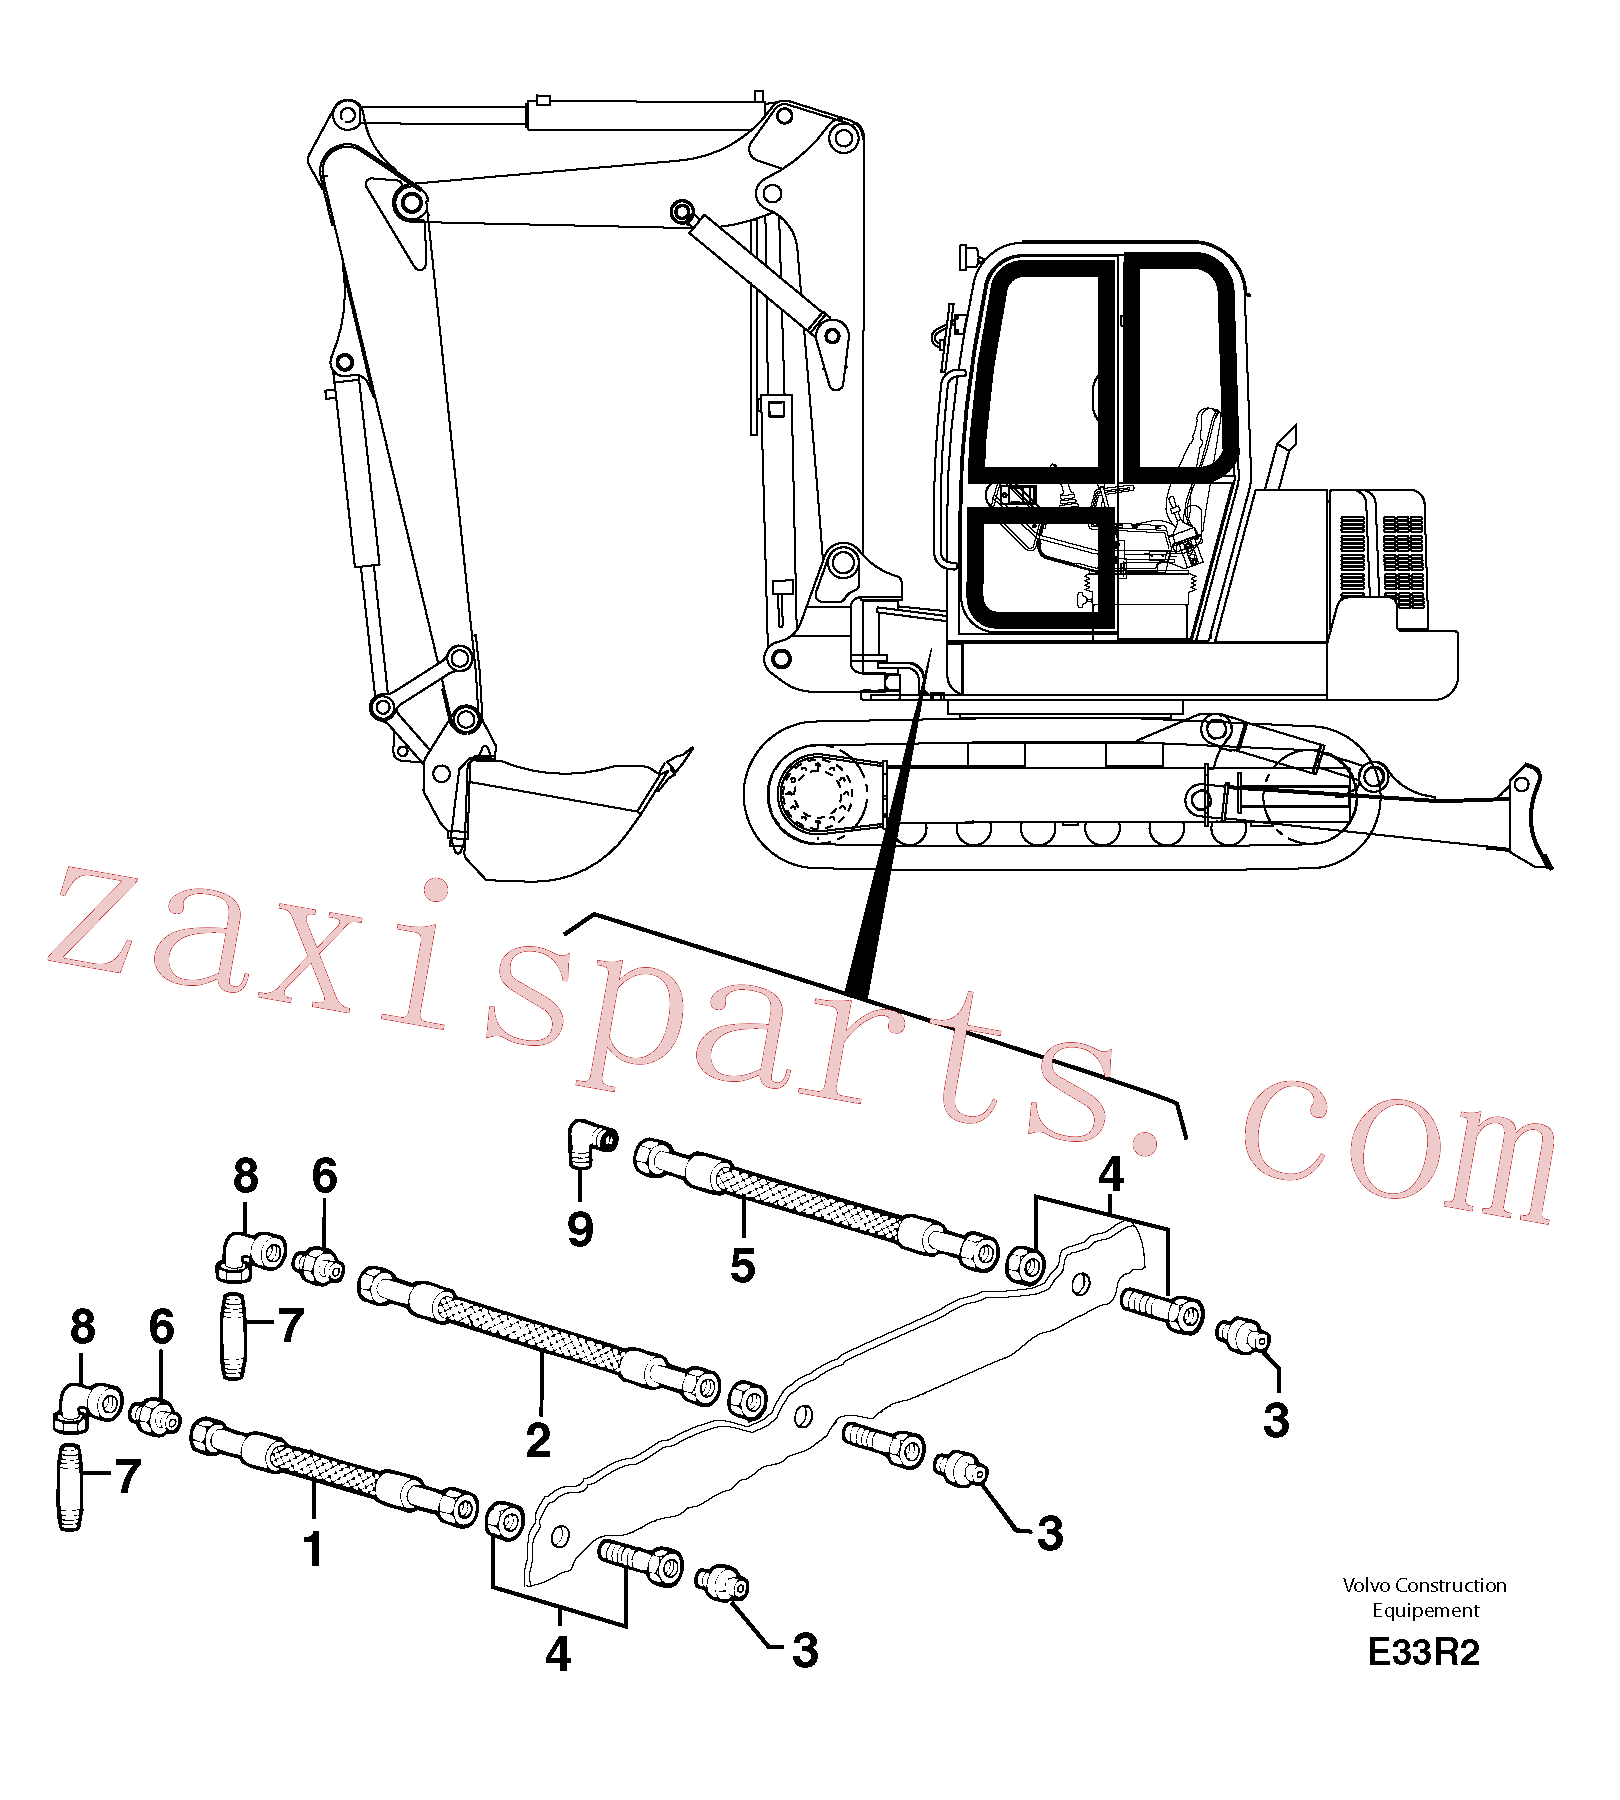 PJ4190183 for Volvo Lubrication chart(E33R2 assembly)